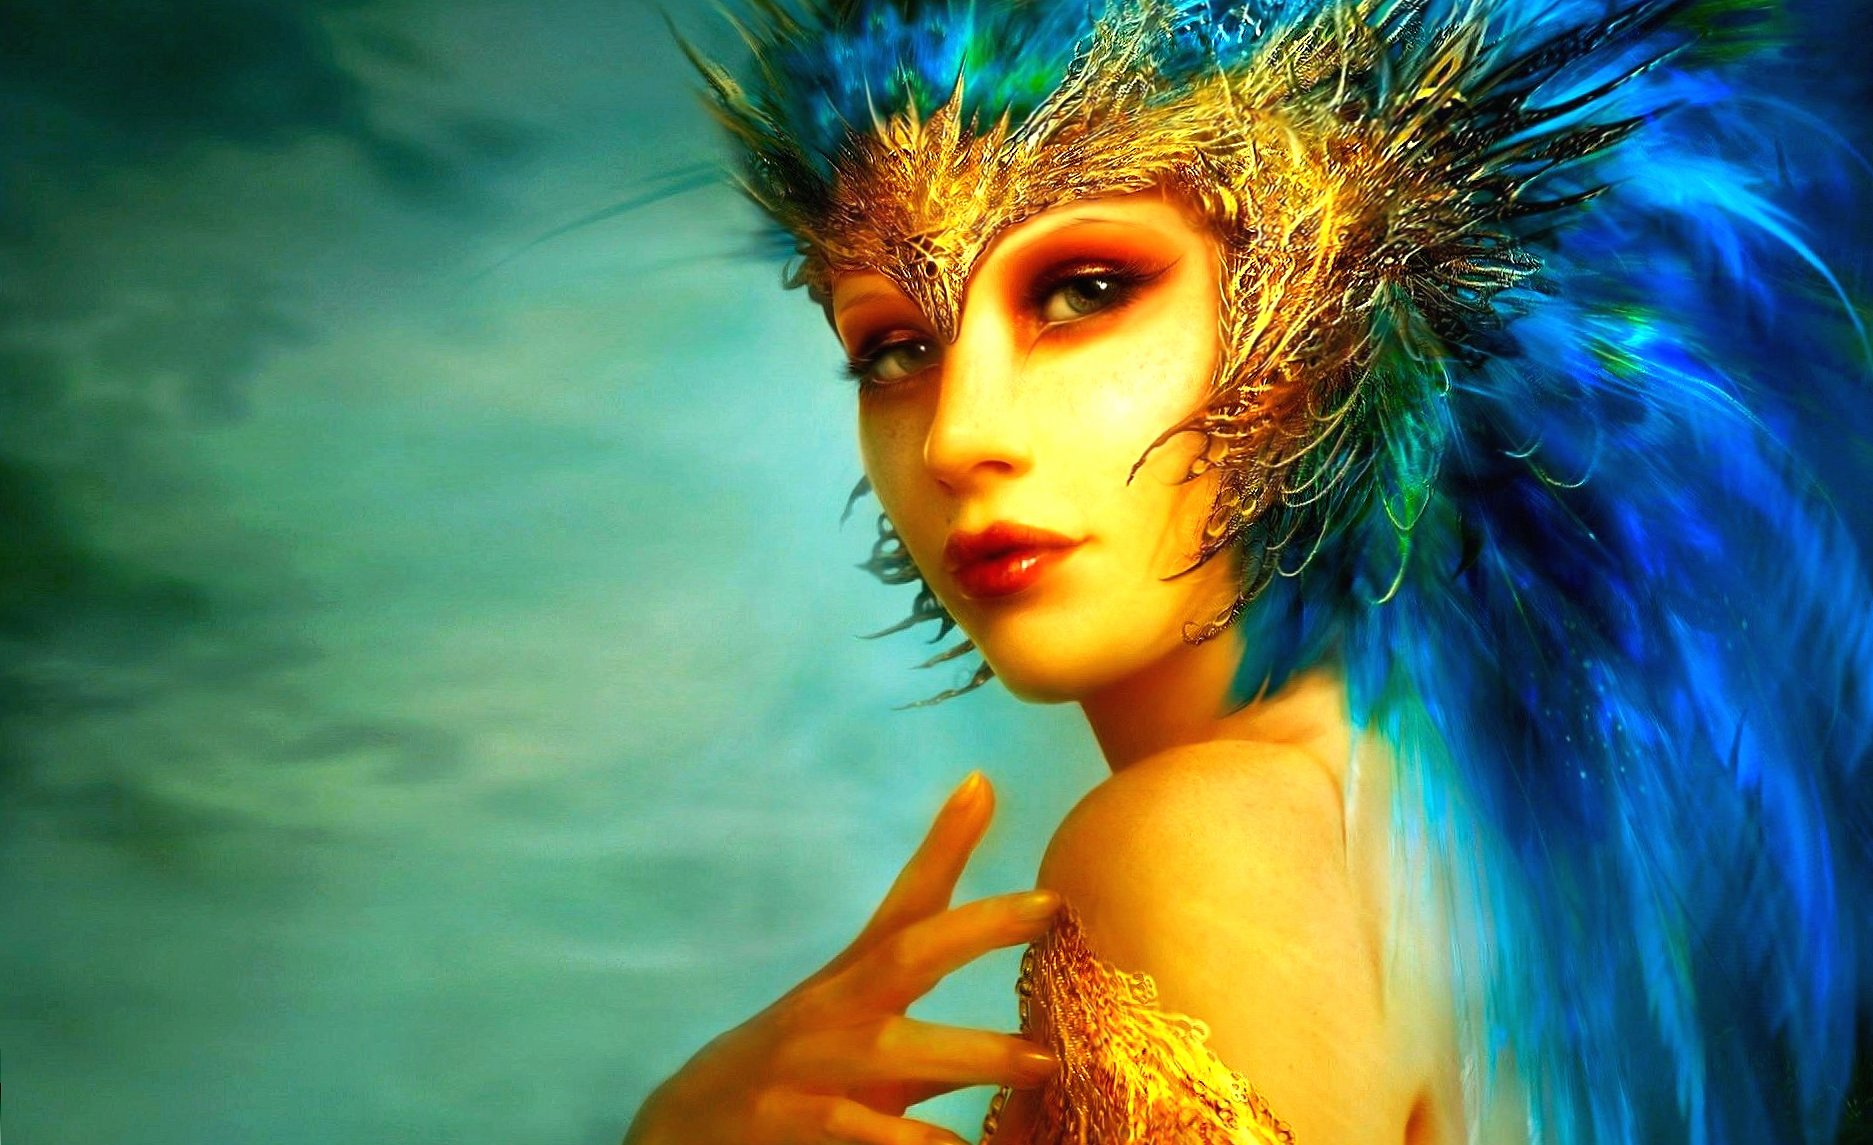 Golden fairy at 1600 x 1200 size wallpapers HD quality